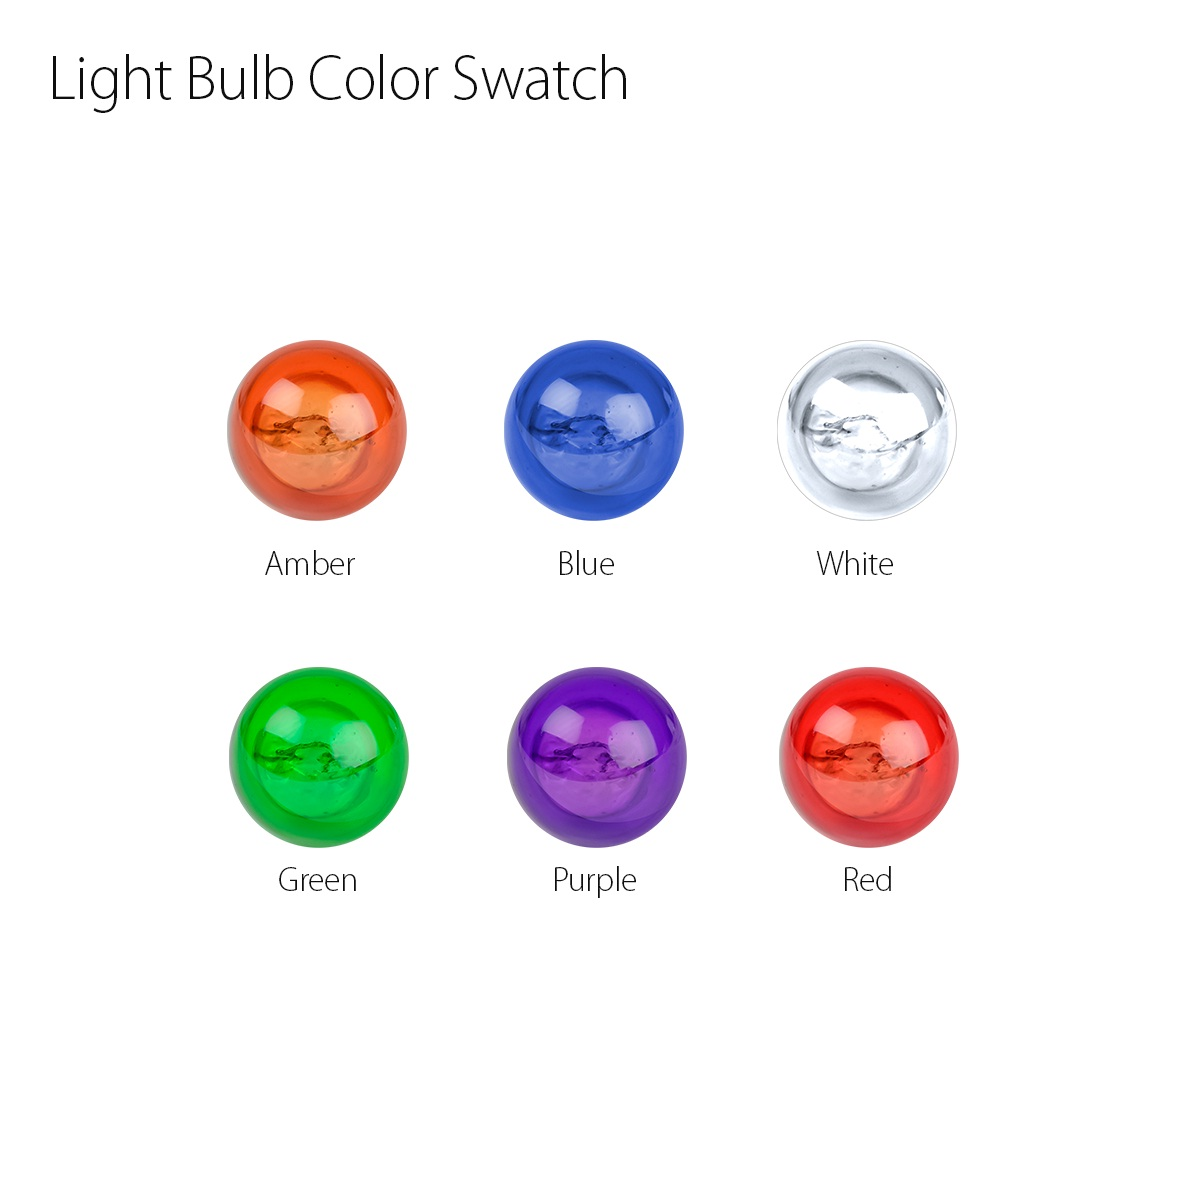 #1893/ #1891/ #1895 Miniature Replacement Light Bulb Color Swatch